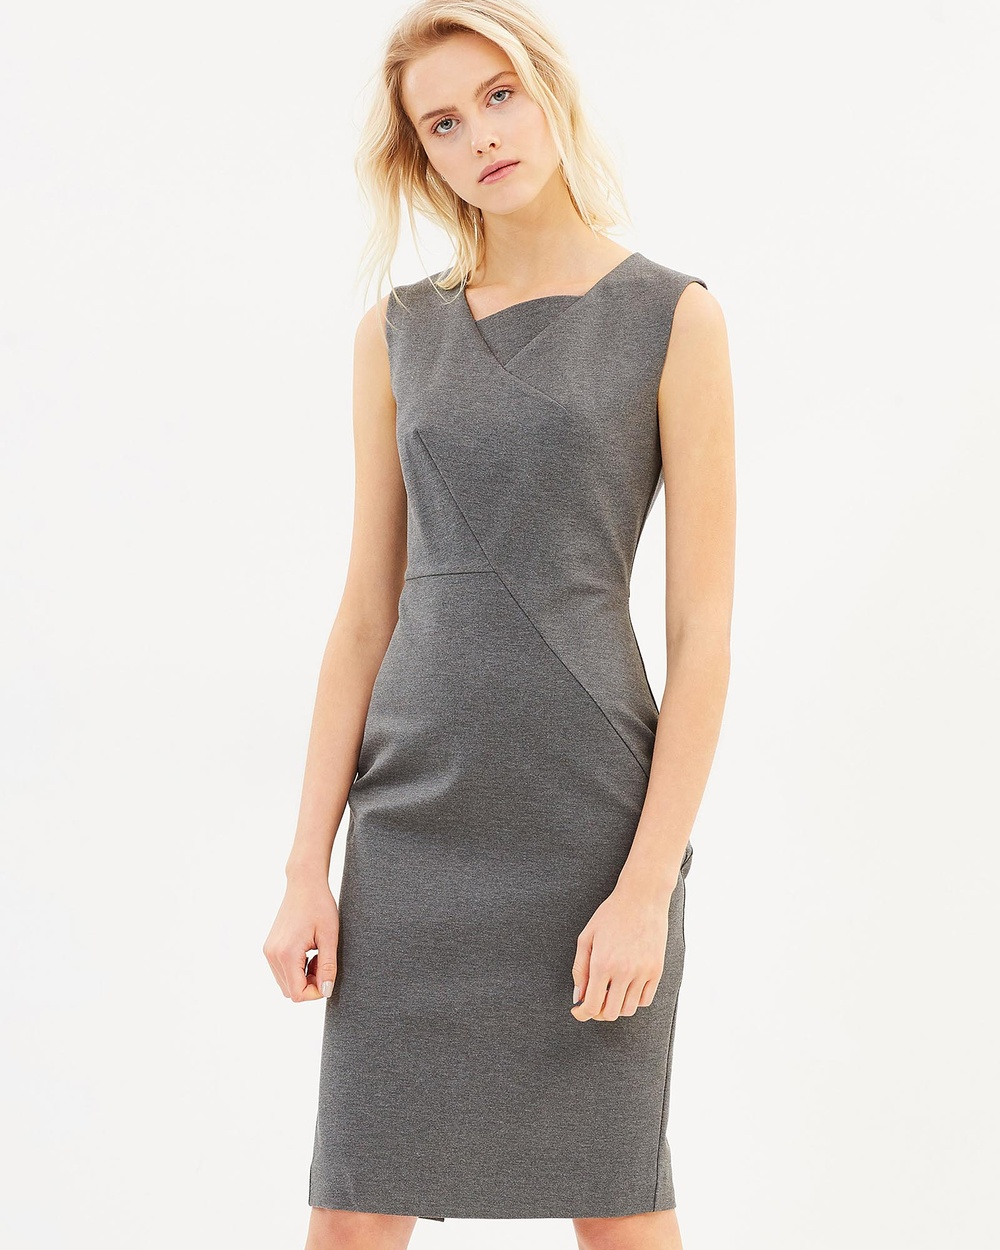 Friend of Audrey Ajax Panel Dress Bodycon Dresses Grey Ajax Panel Dress